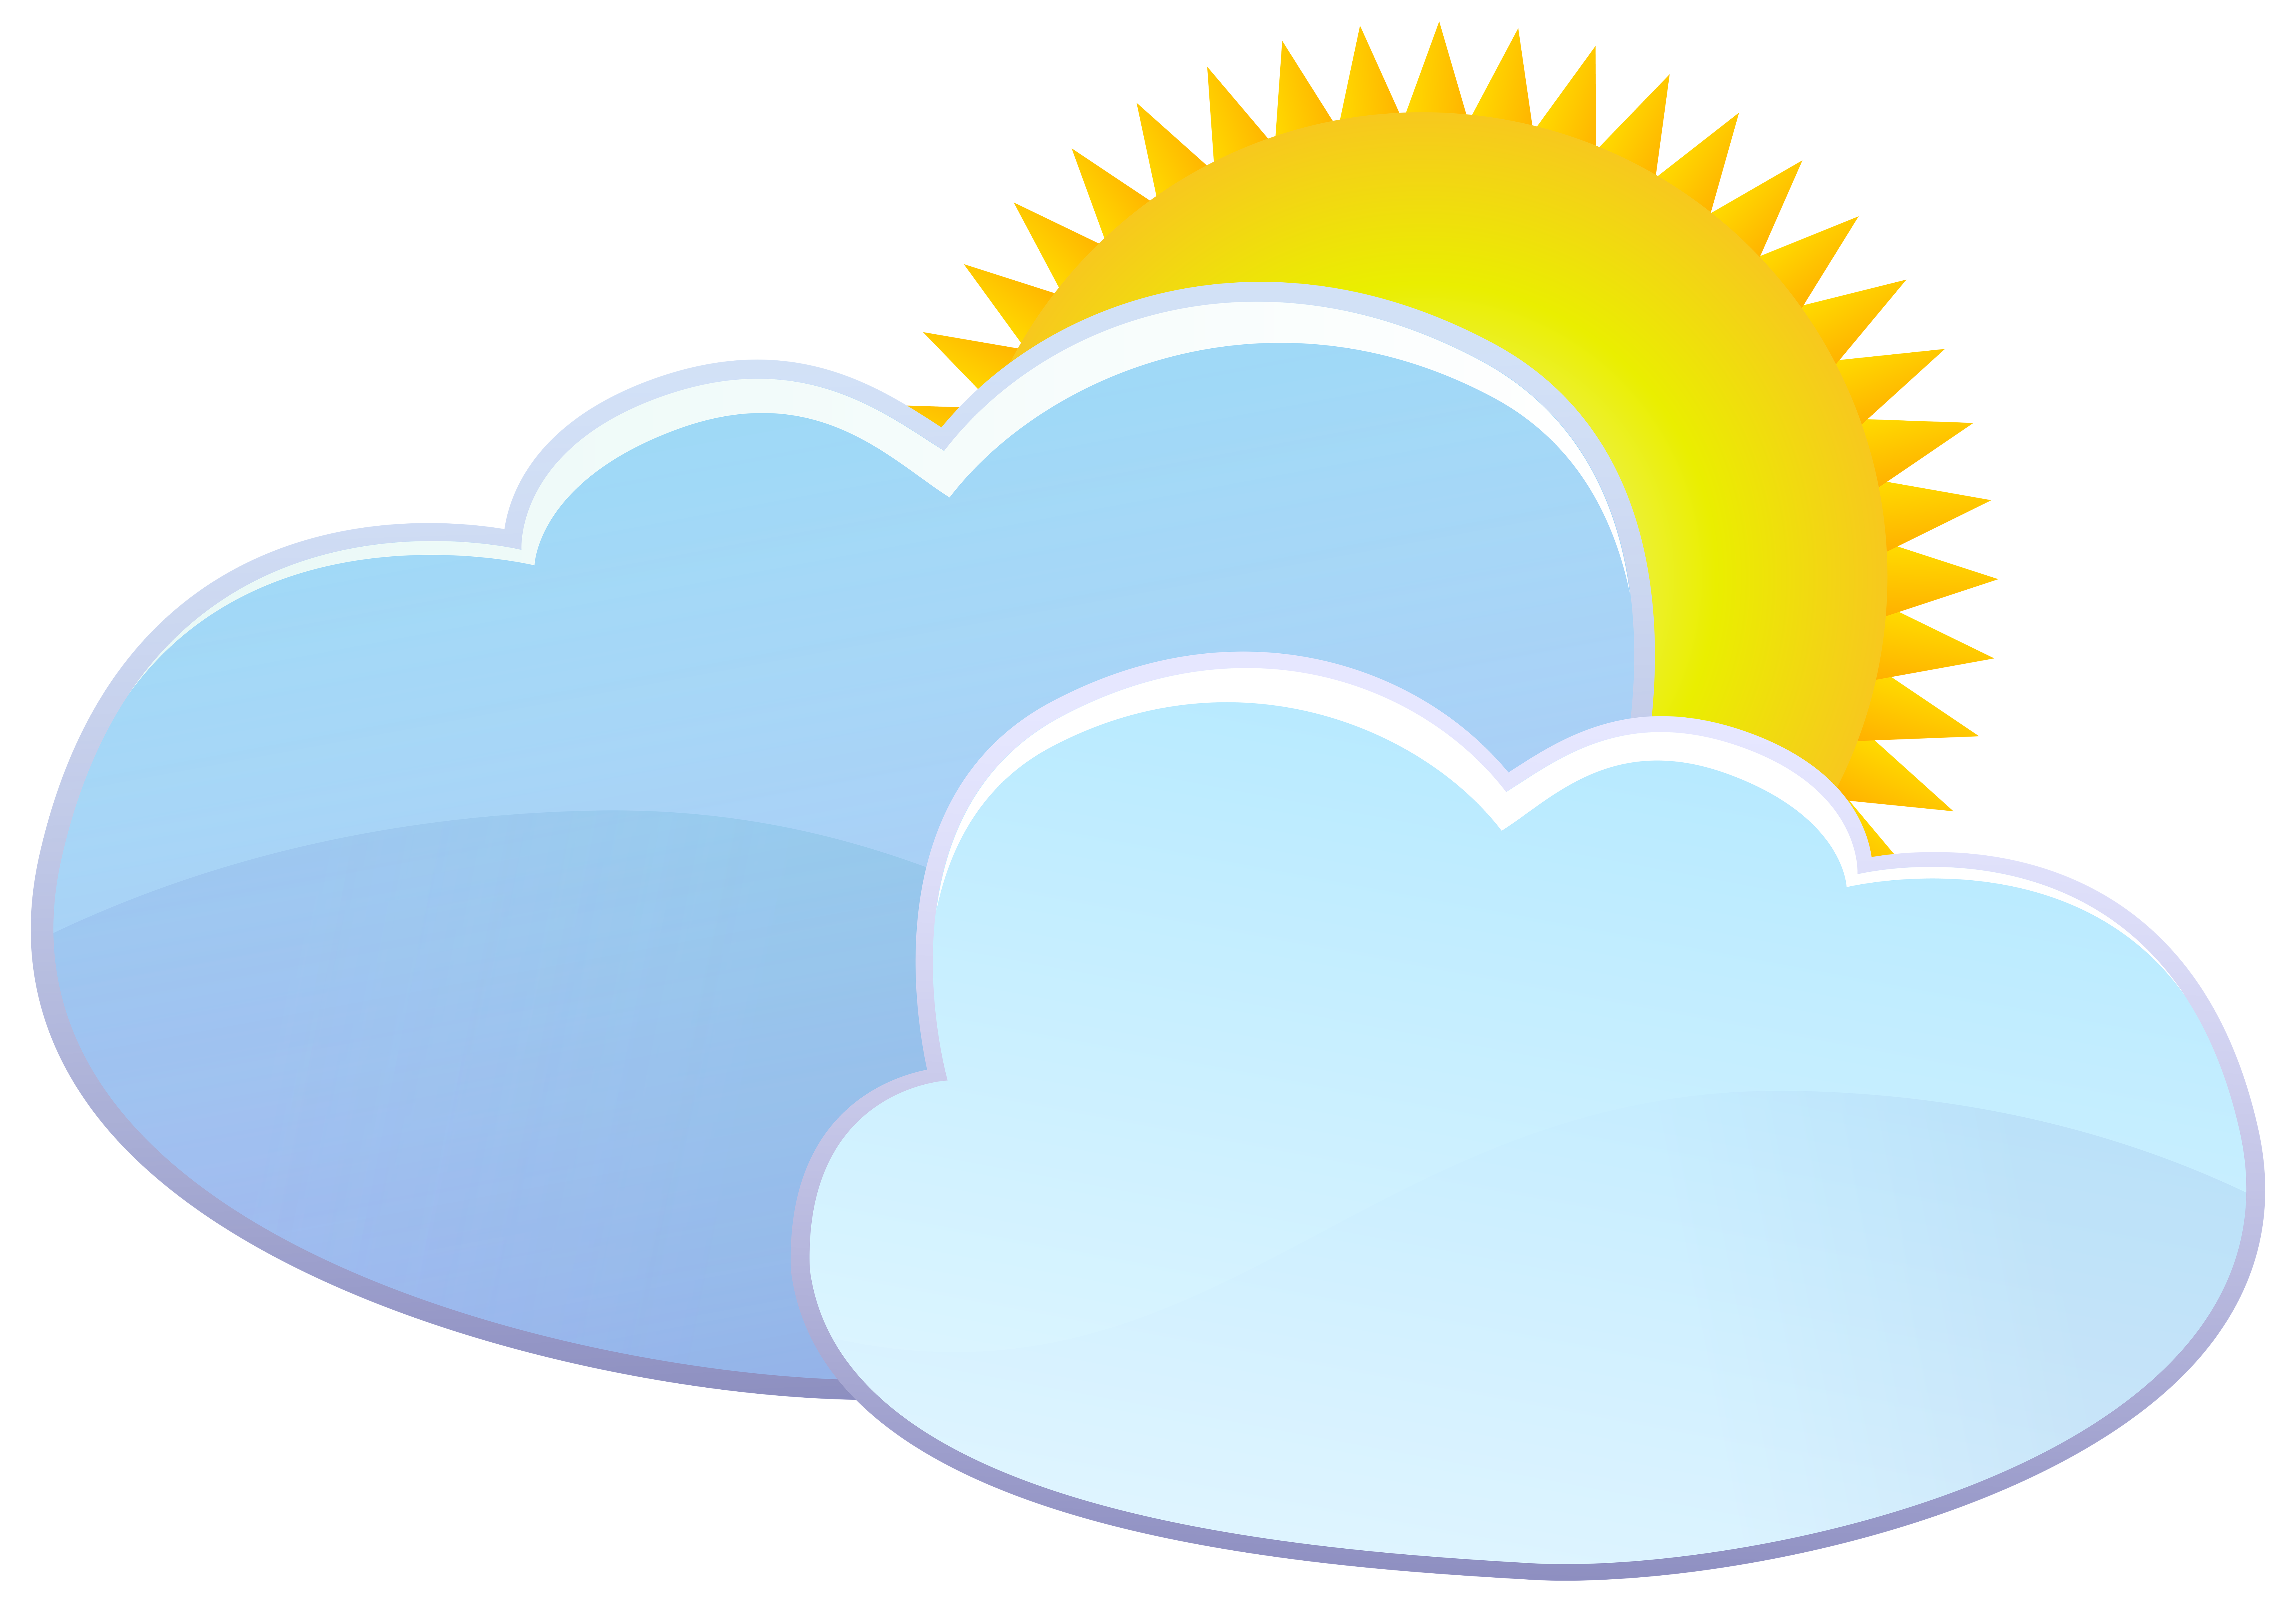 vector royalty free stock Cloud clipart heart. Clouds and sun weather.